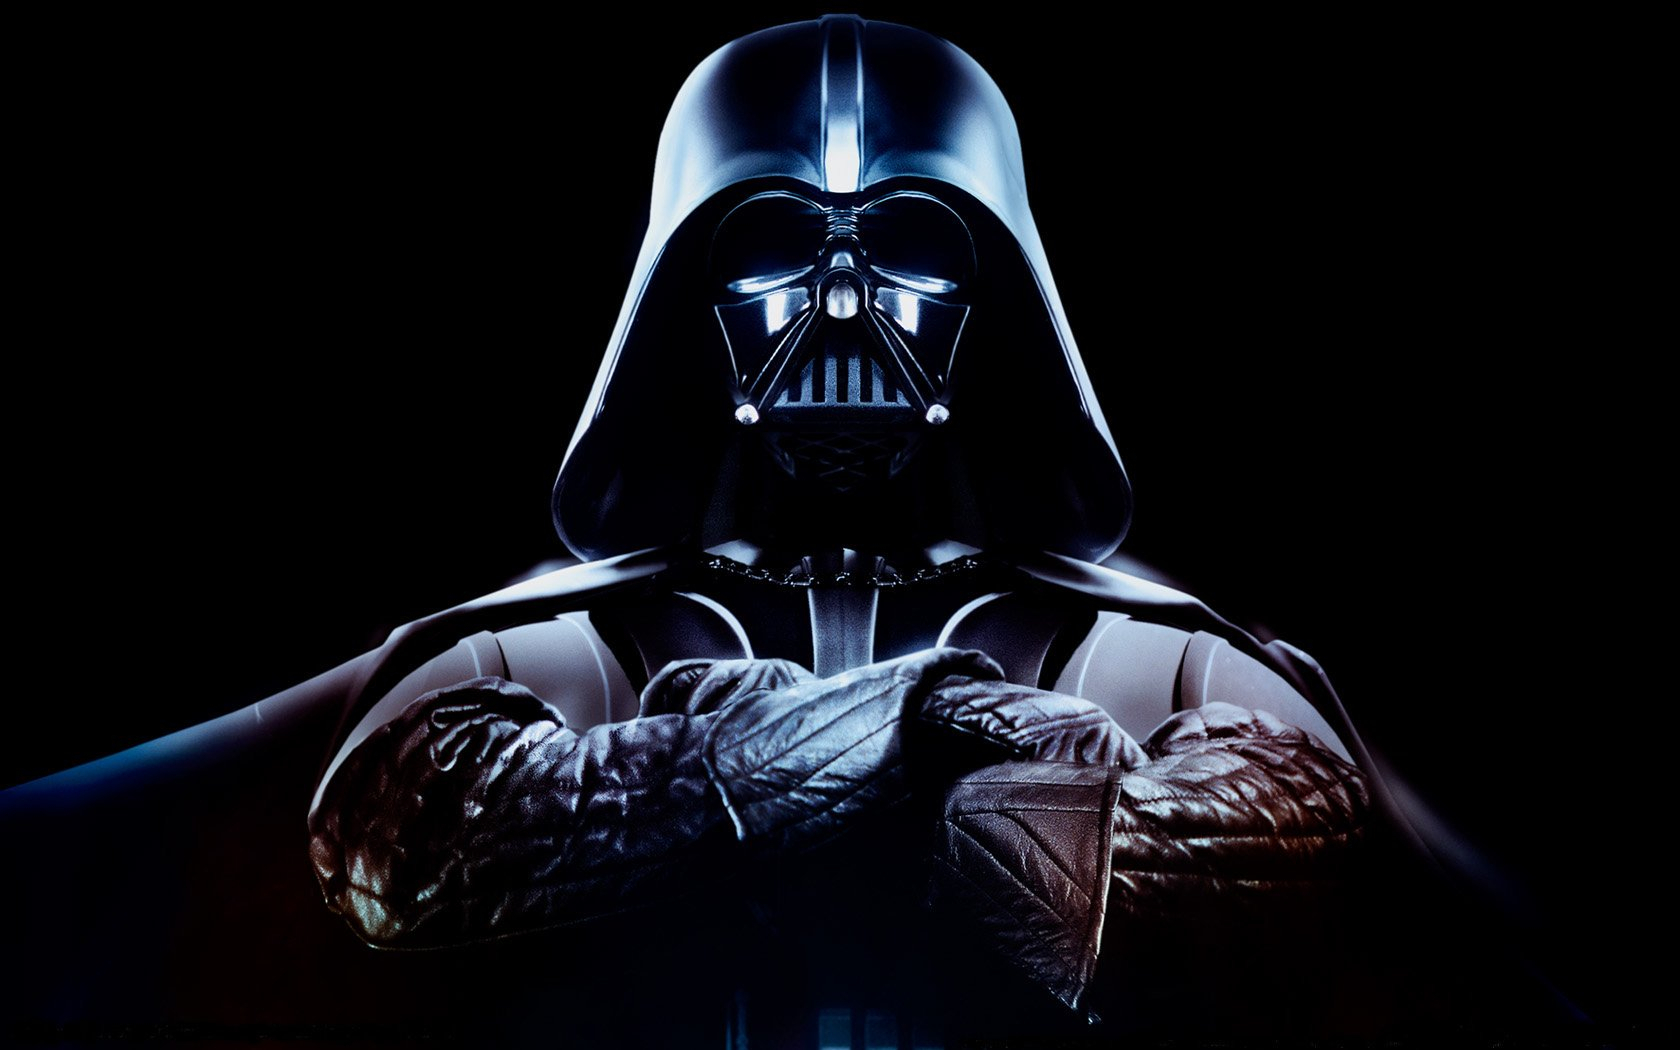 614 star wars hd wallpapers | background images - wallpaper abyss